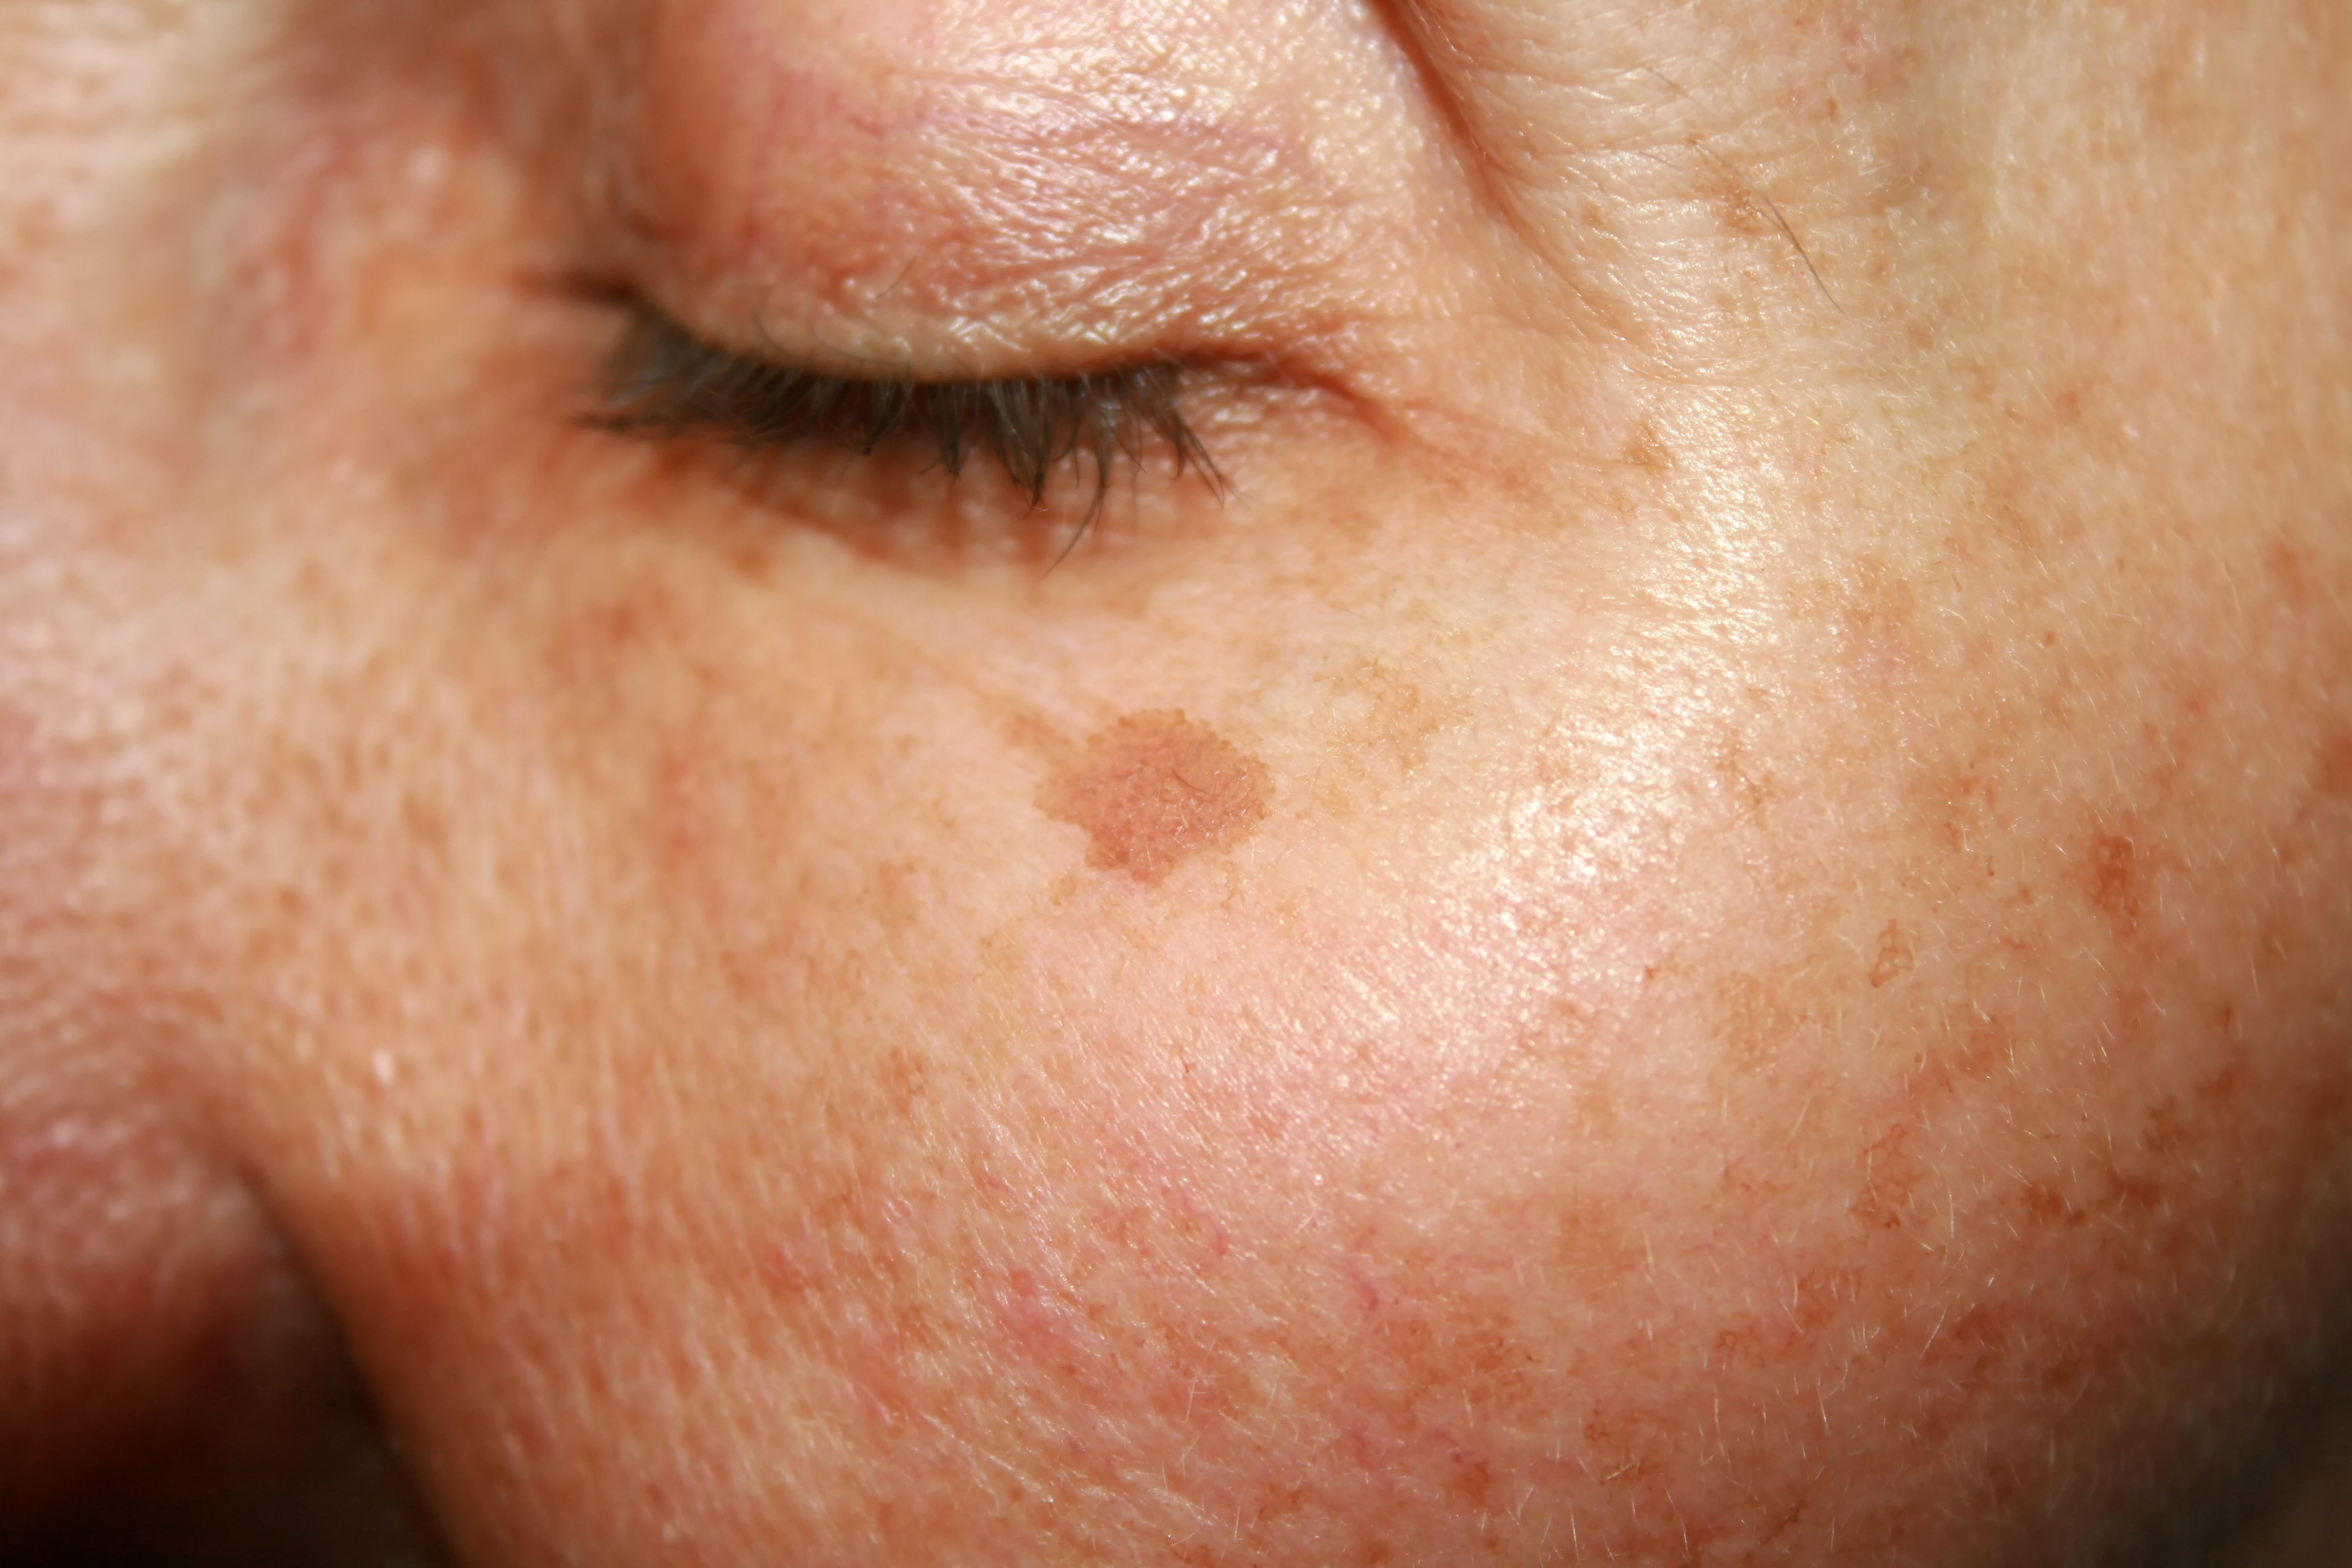 Brown spots under the eye. Pigmentation on the face